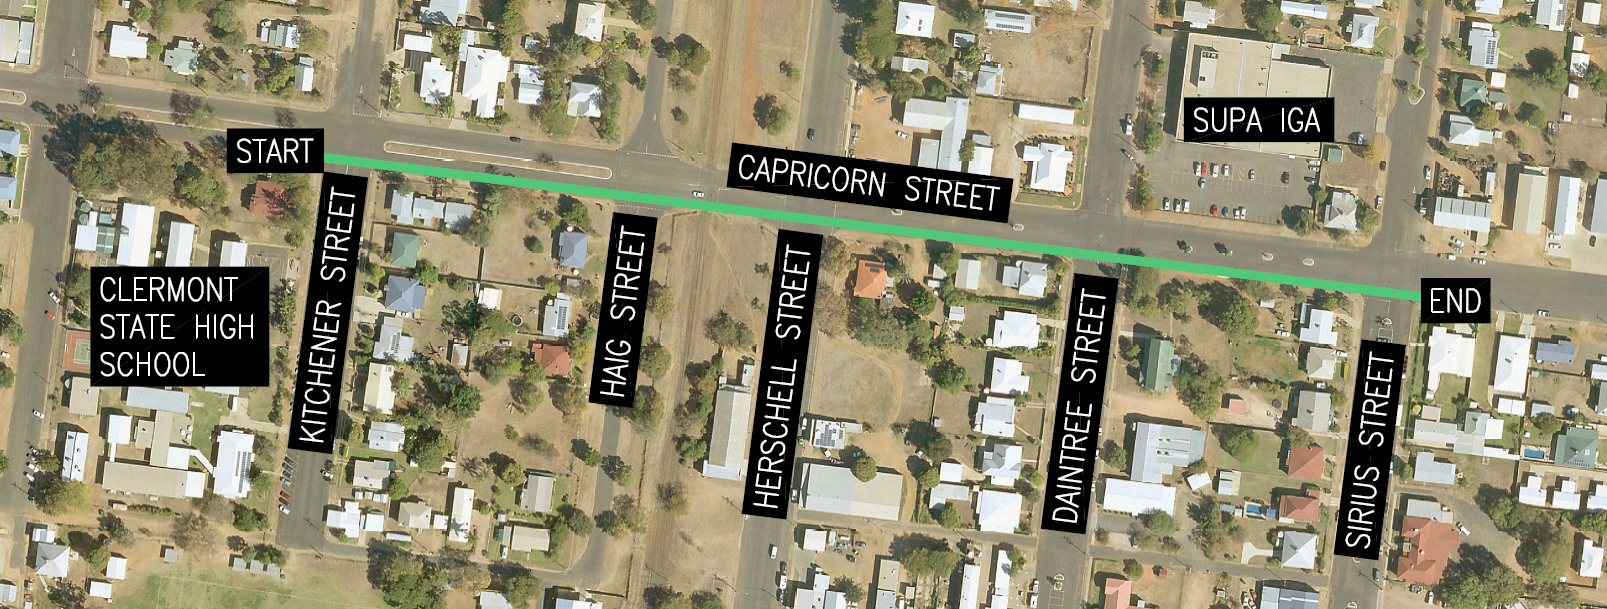 Capricorn street cycle track